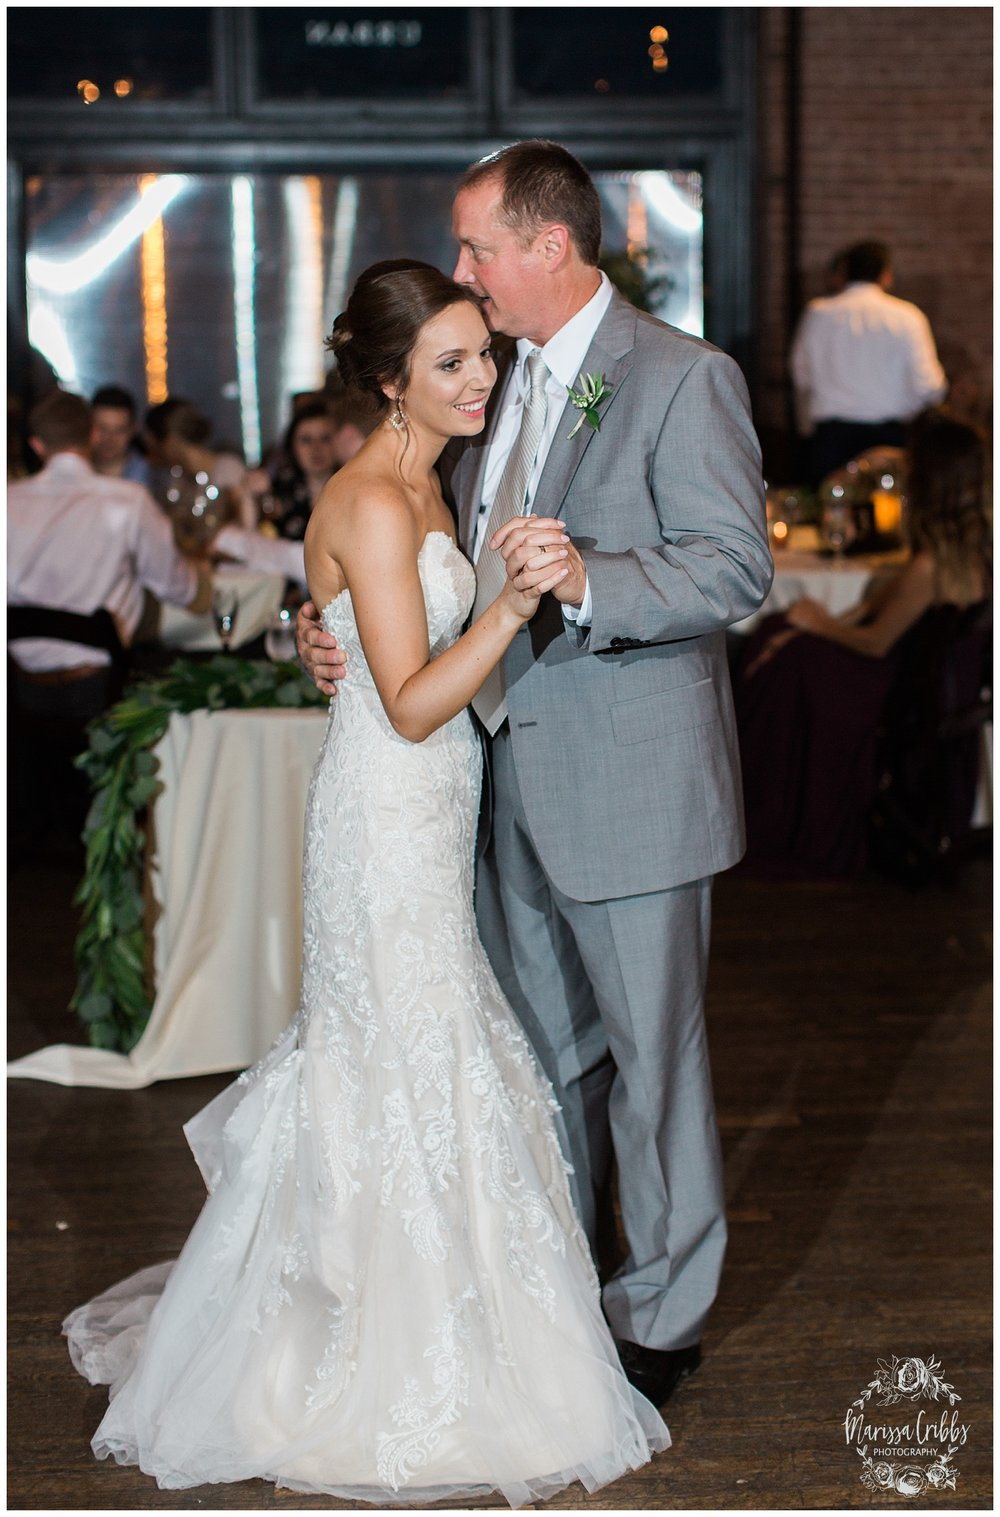 FEASTS OF FANCY KC WEDDING | THE HOBBS WEDDING KANSAS CITY | MARISSA CRIBBS PHOTOGRAPHY_2274.jpg